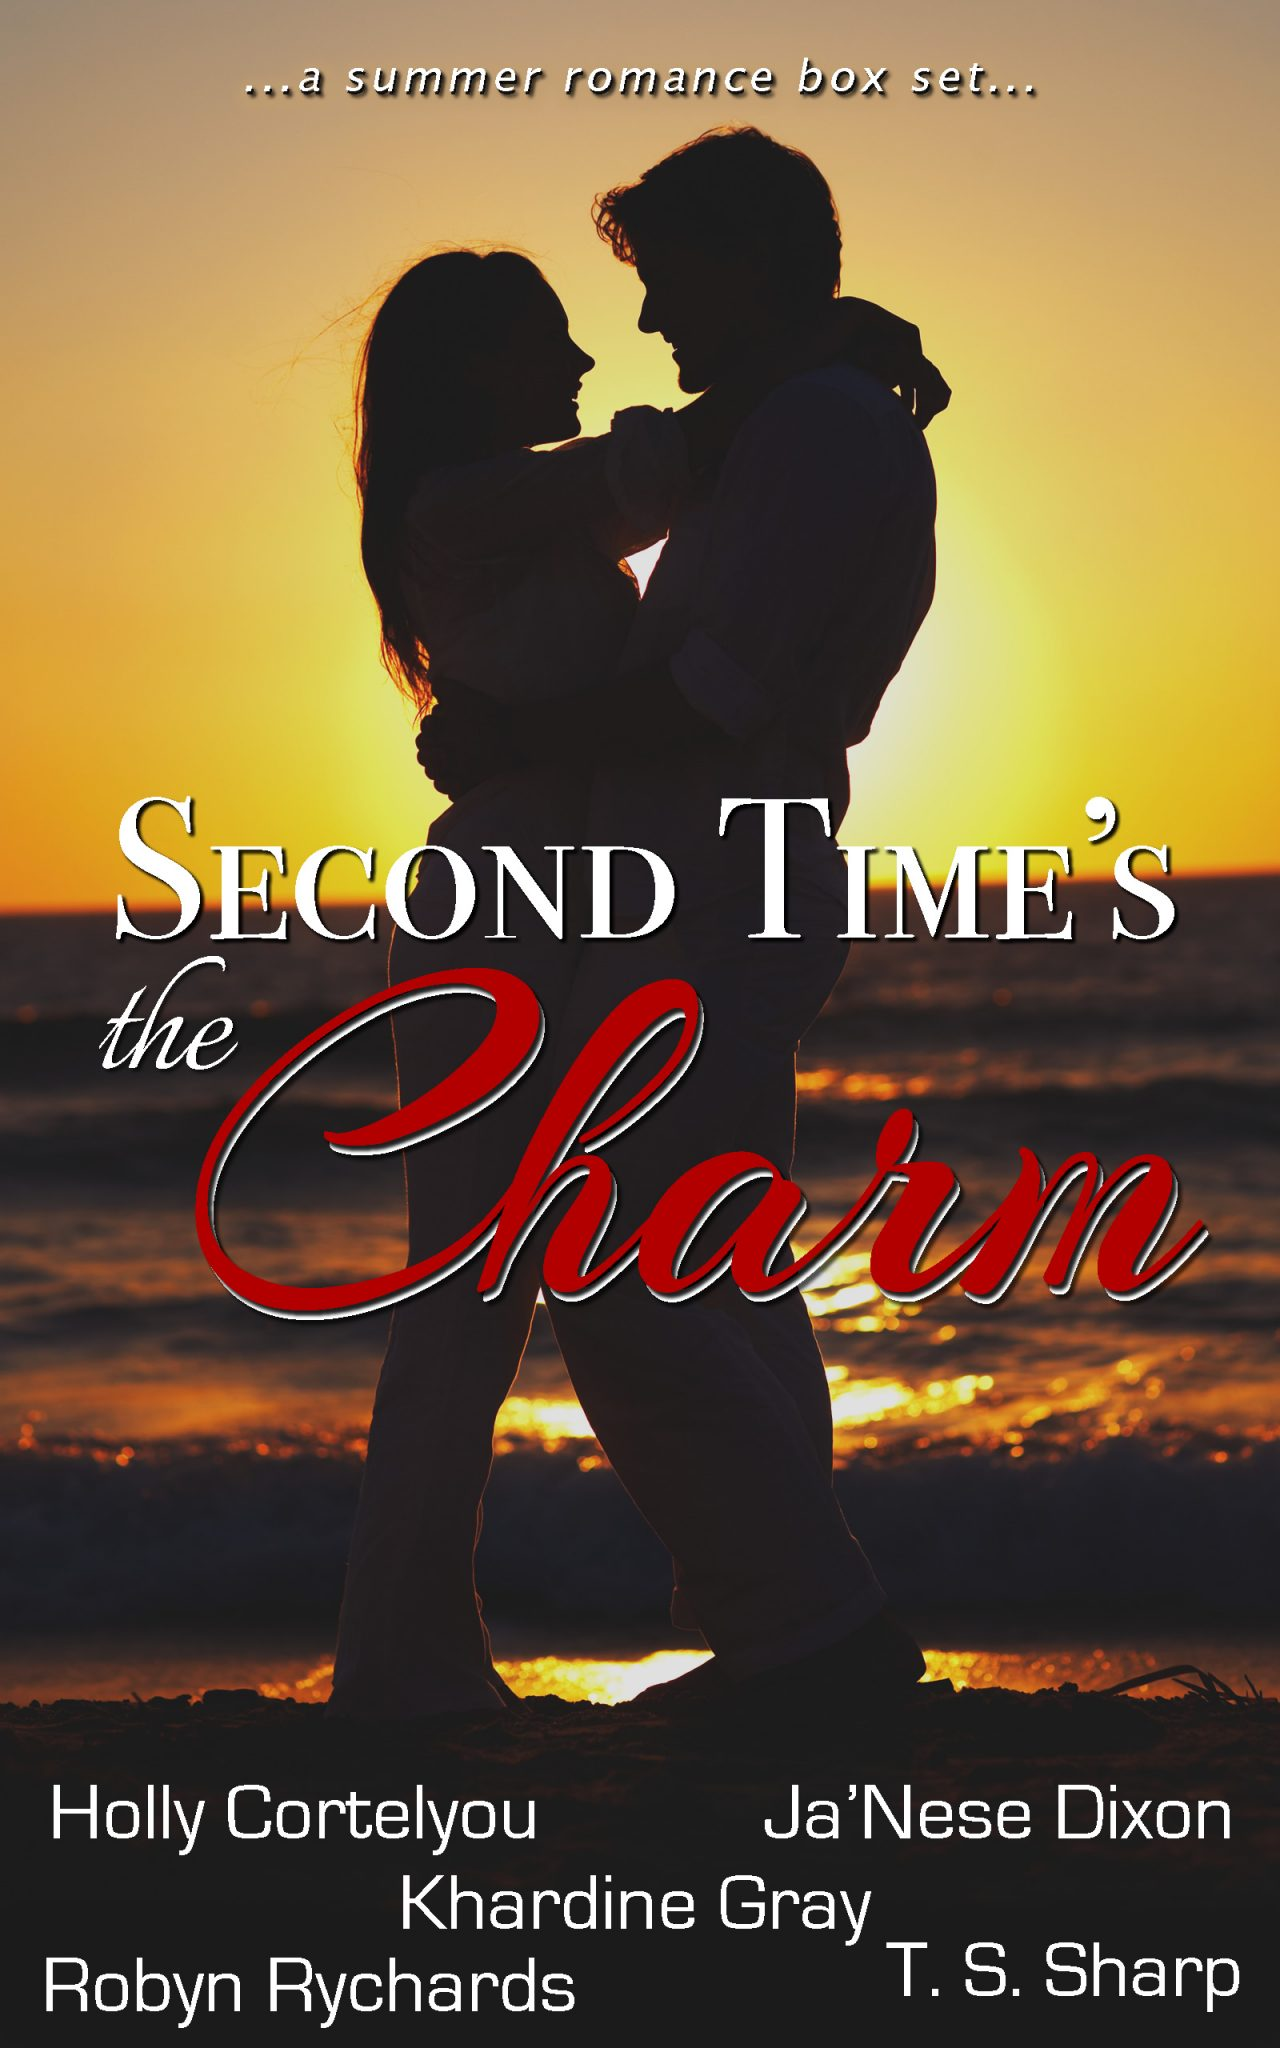 """Second Time's the Charm Boxed Set with Ja'Nese Dixon"